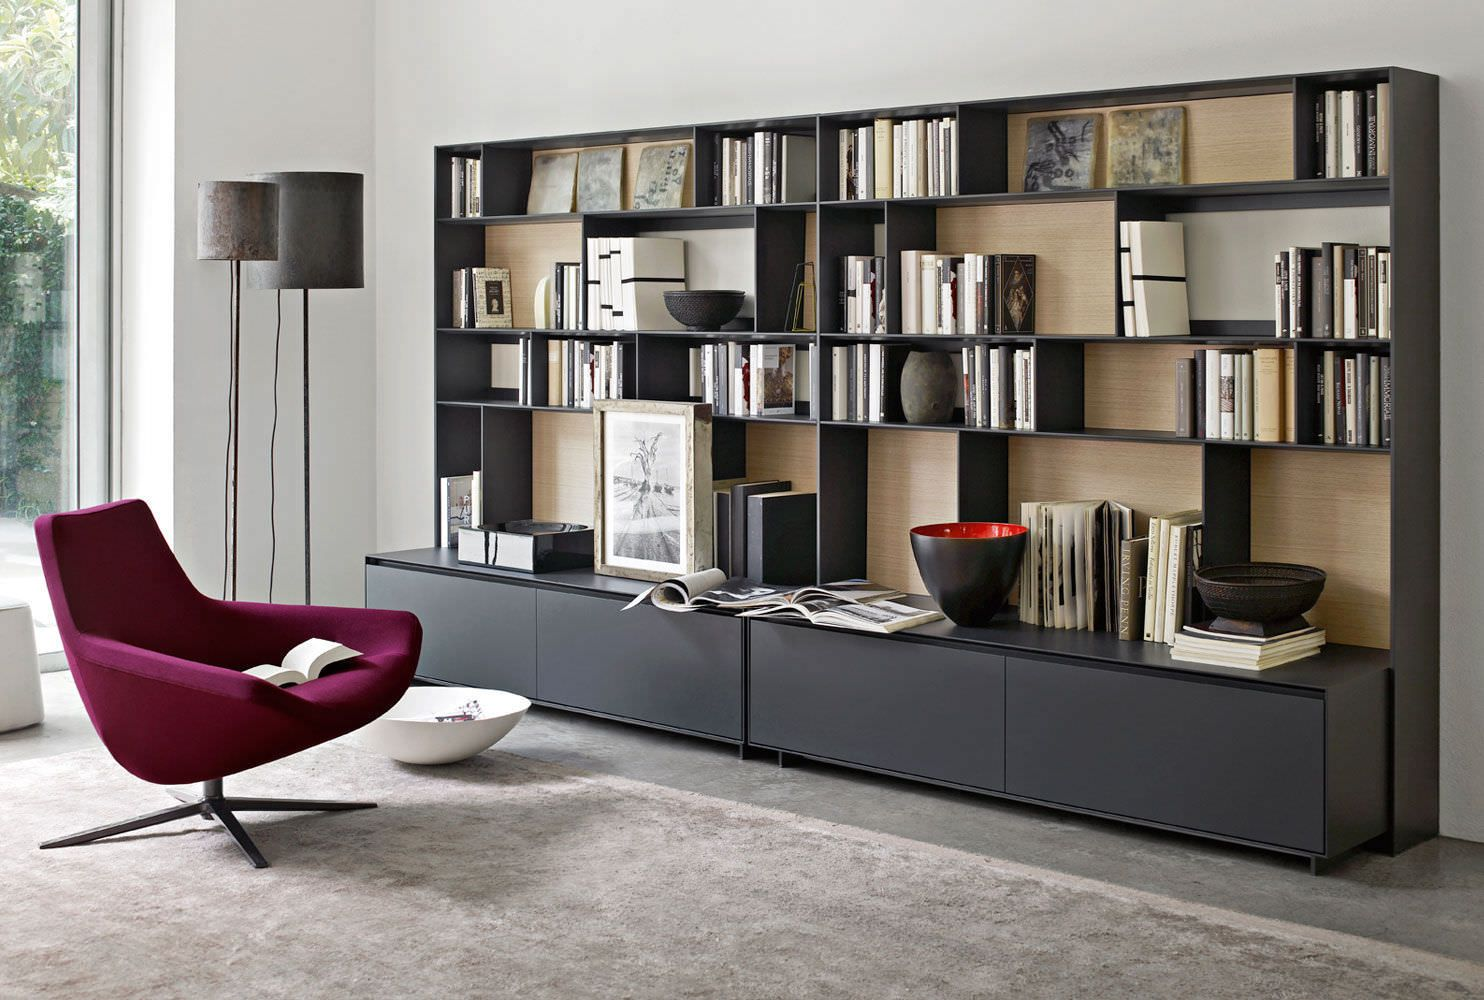 Biblioth Que Modulable Contemporaine En Bois Laqu En  # Bibliotheque Meuble Tv Contemporain